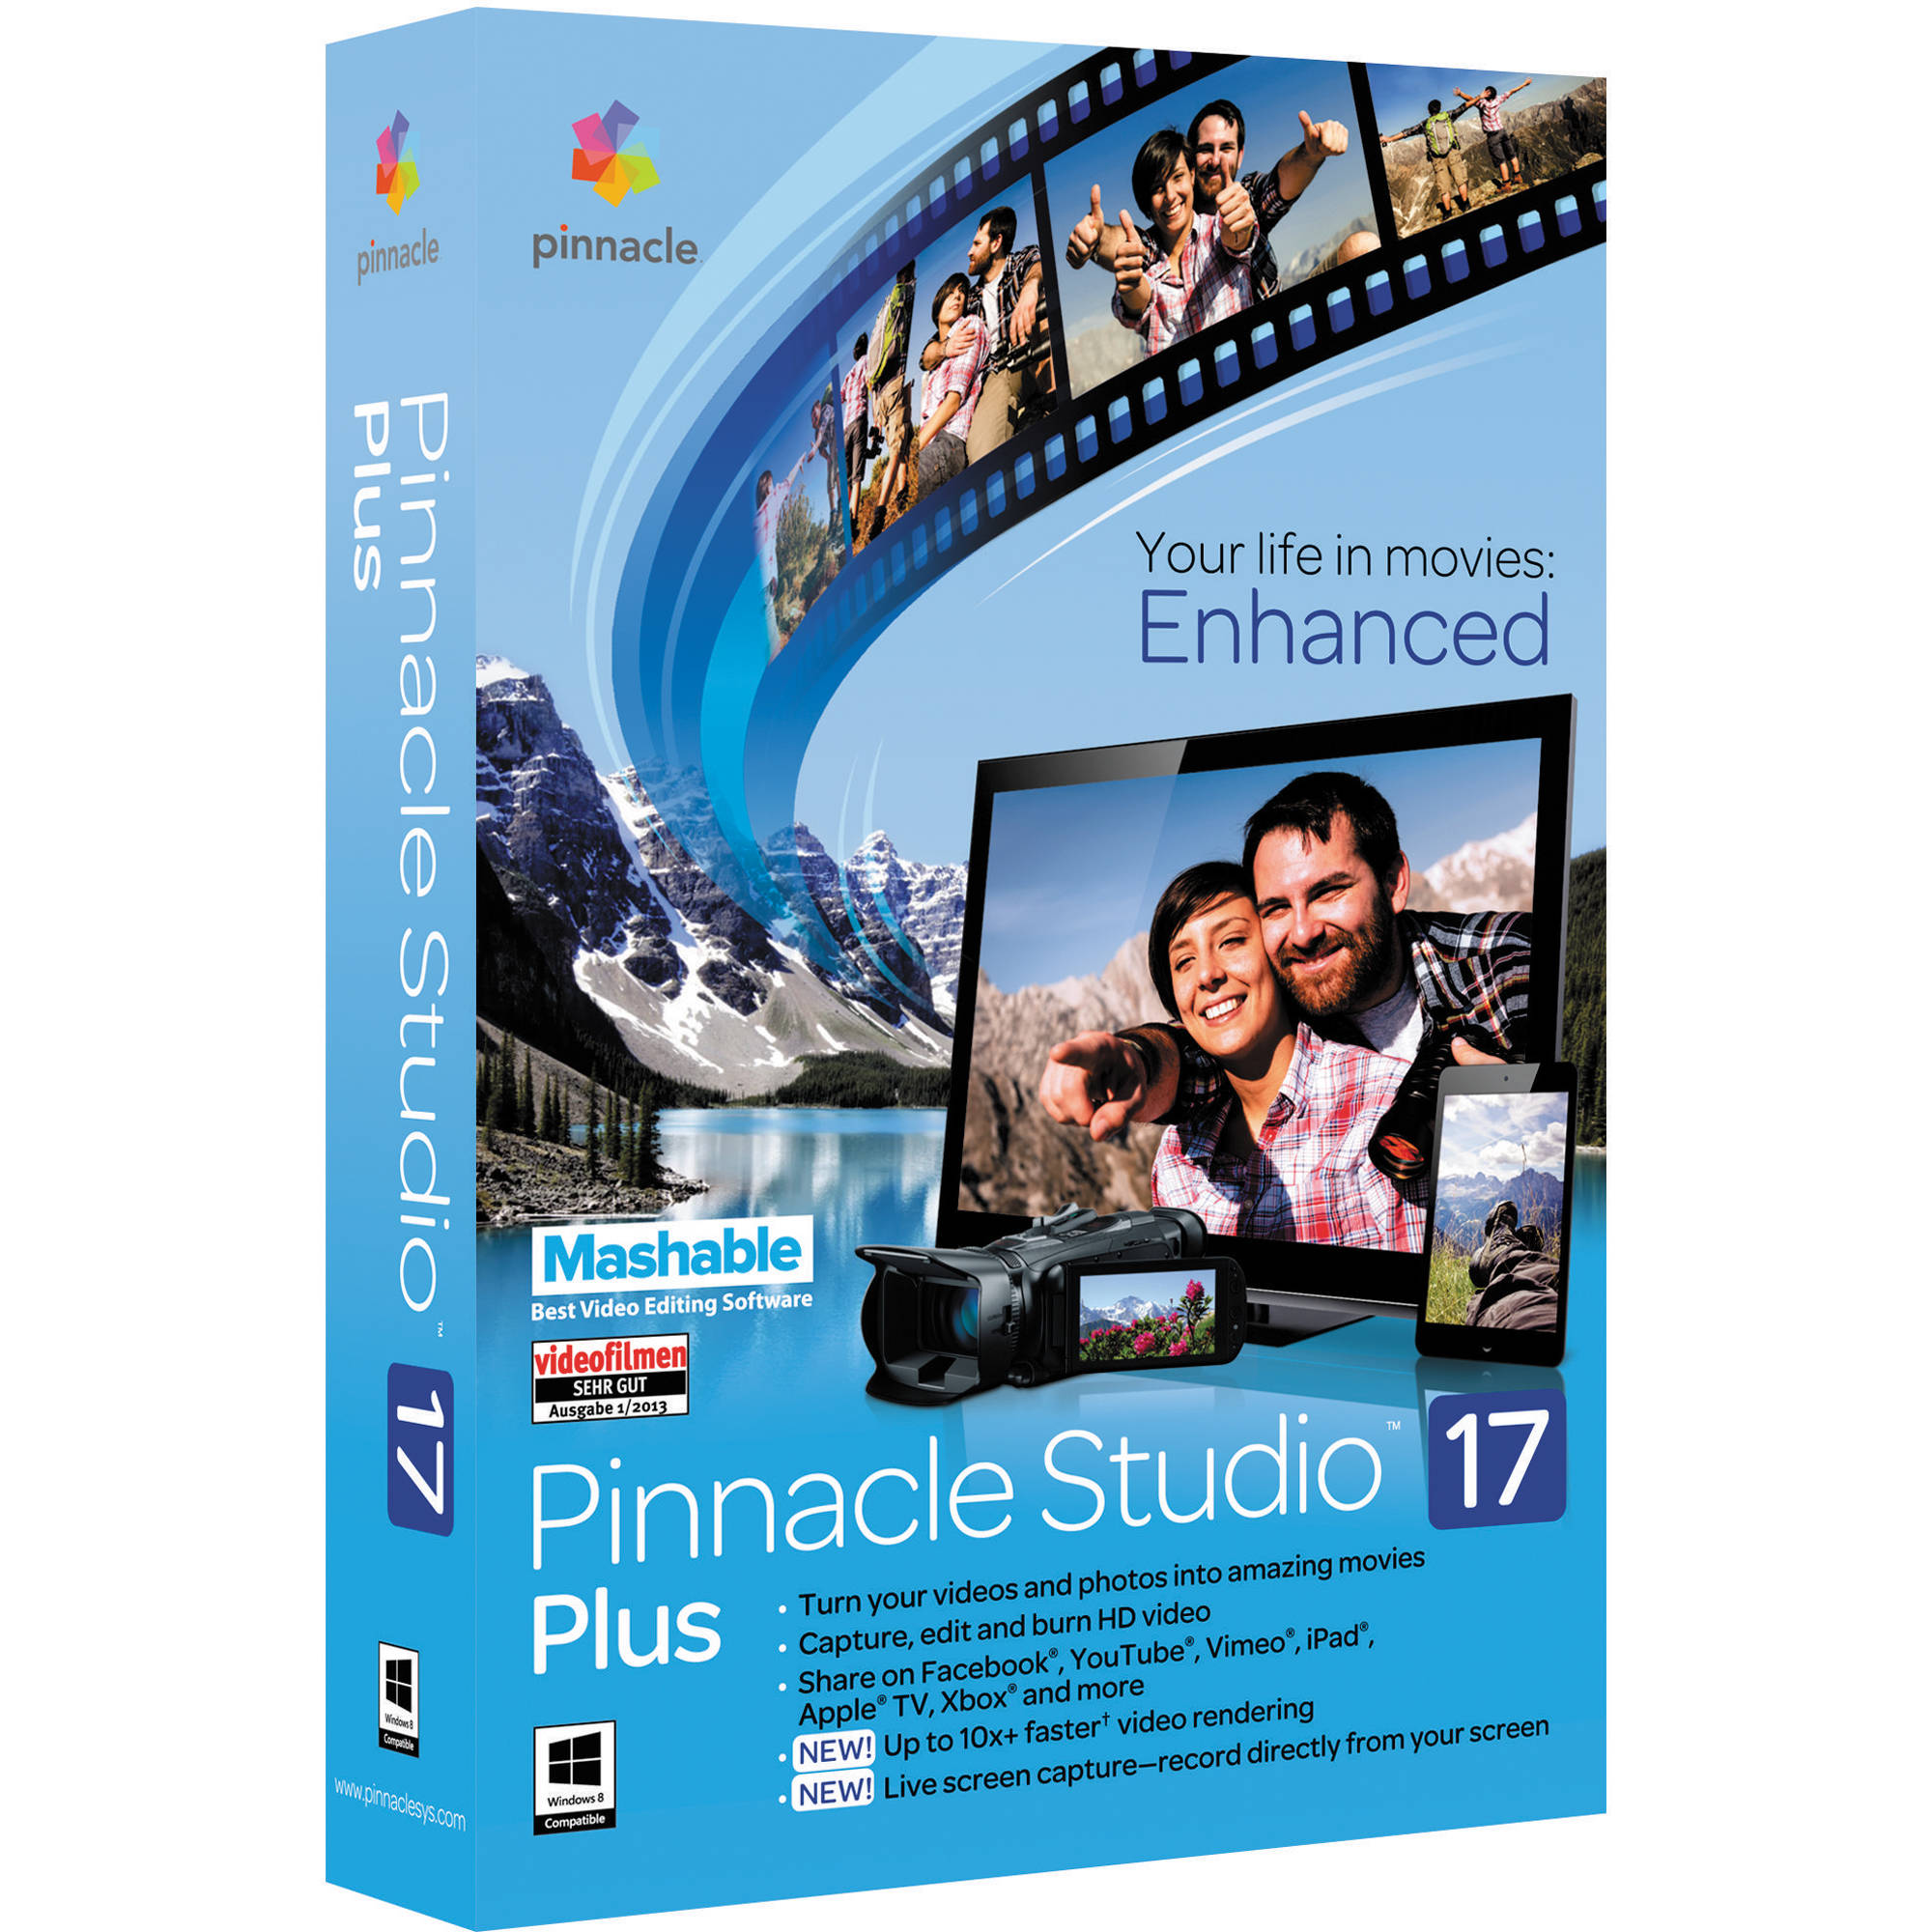 pinnacle pinnacle studio 17 plus download pinnaclestudio17plus